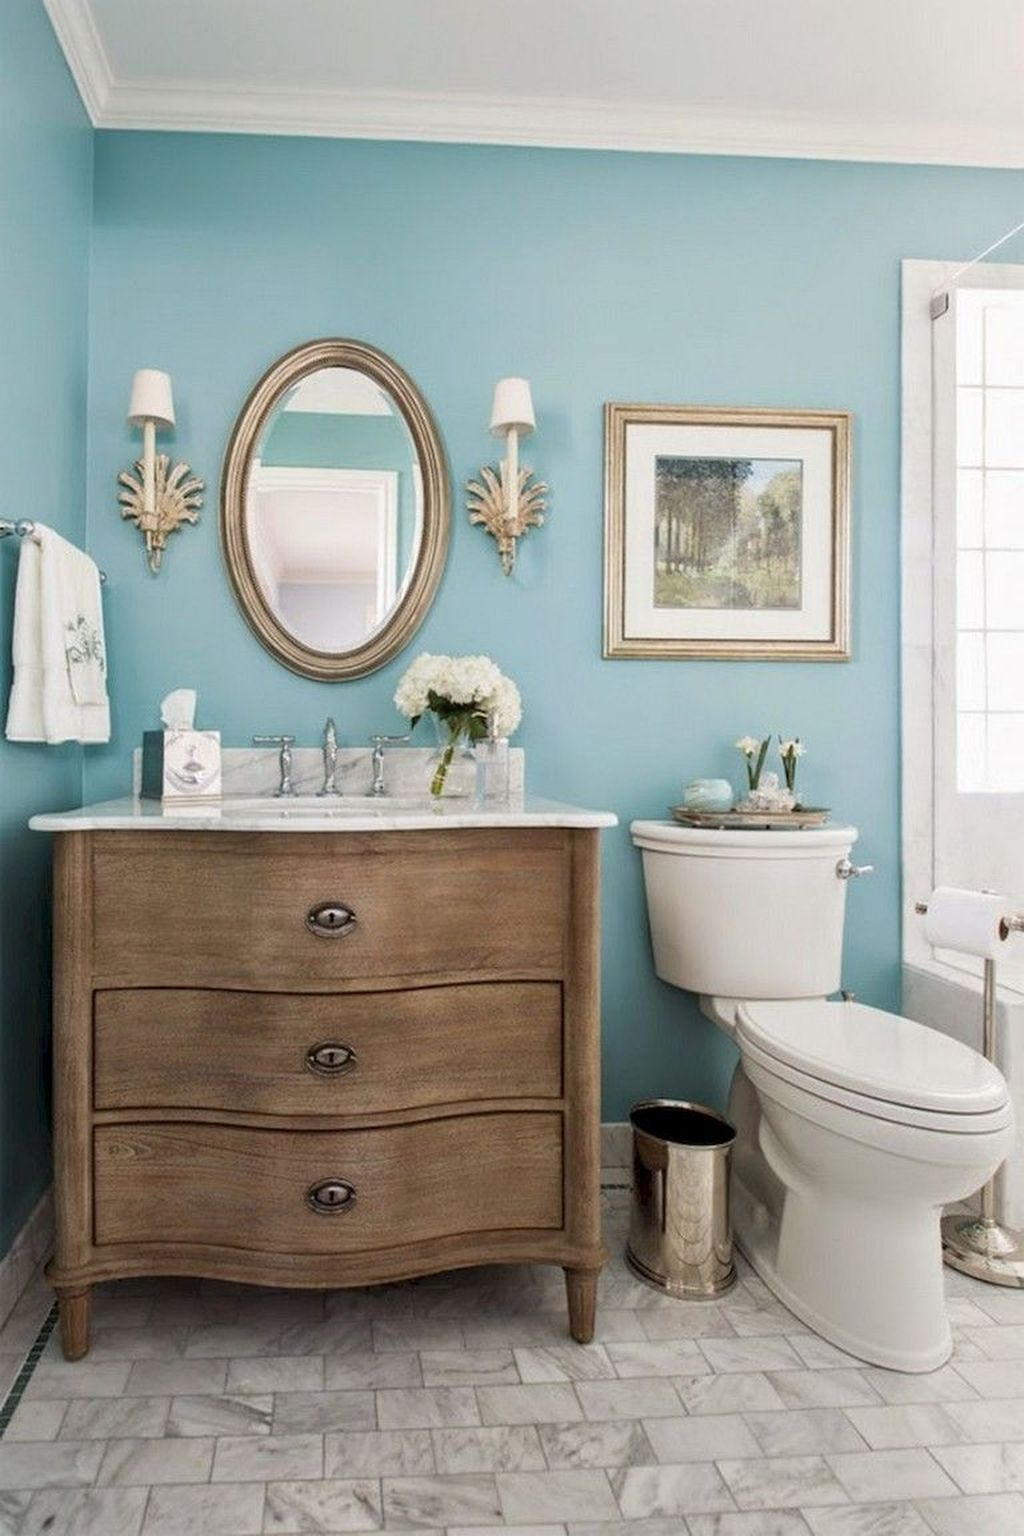 Fabulous Bathroom Decor Ideas With Coastal Style 11